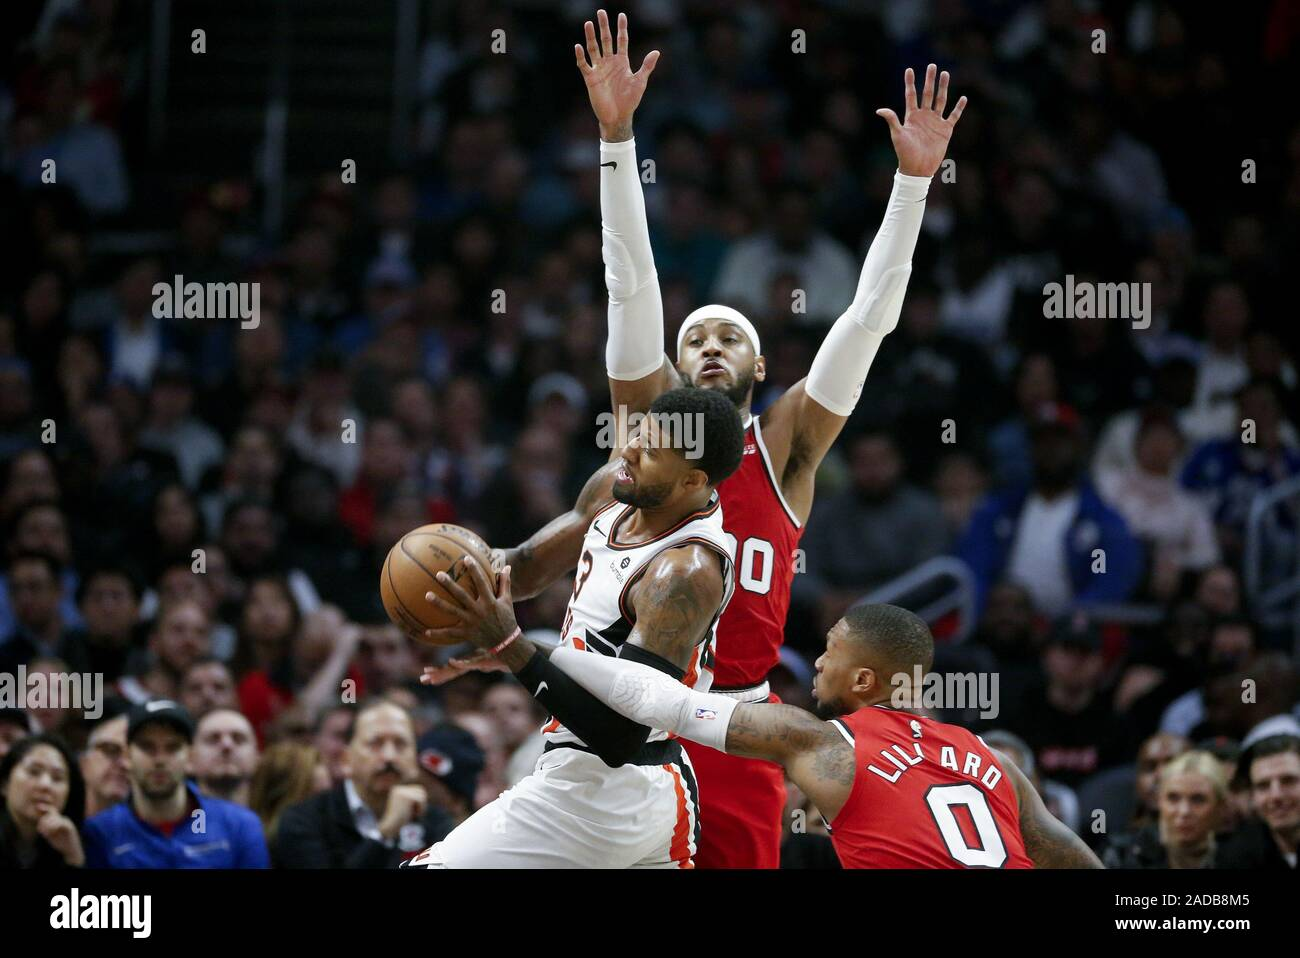 Los Angeles California Usa 3rd Dec 2019 Los Angeles Clippers Paul George 13 Drives Between Portland